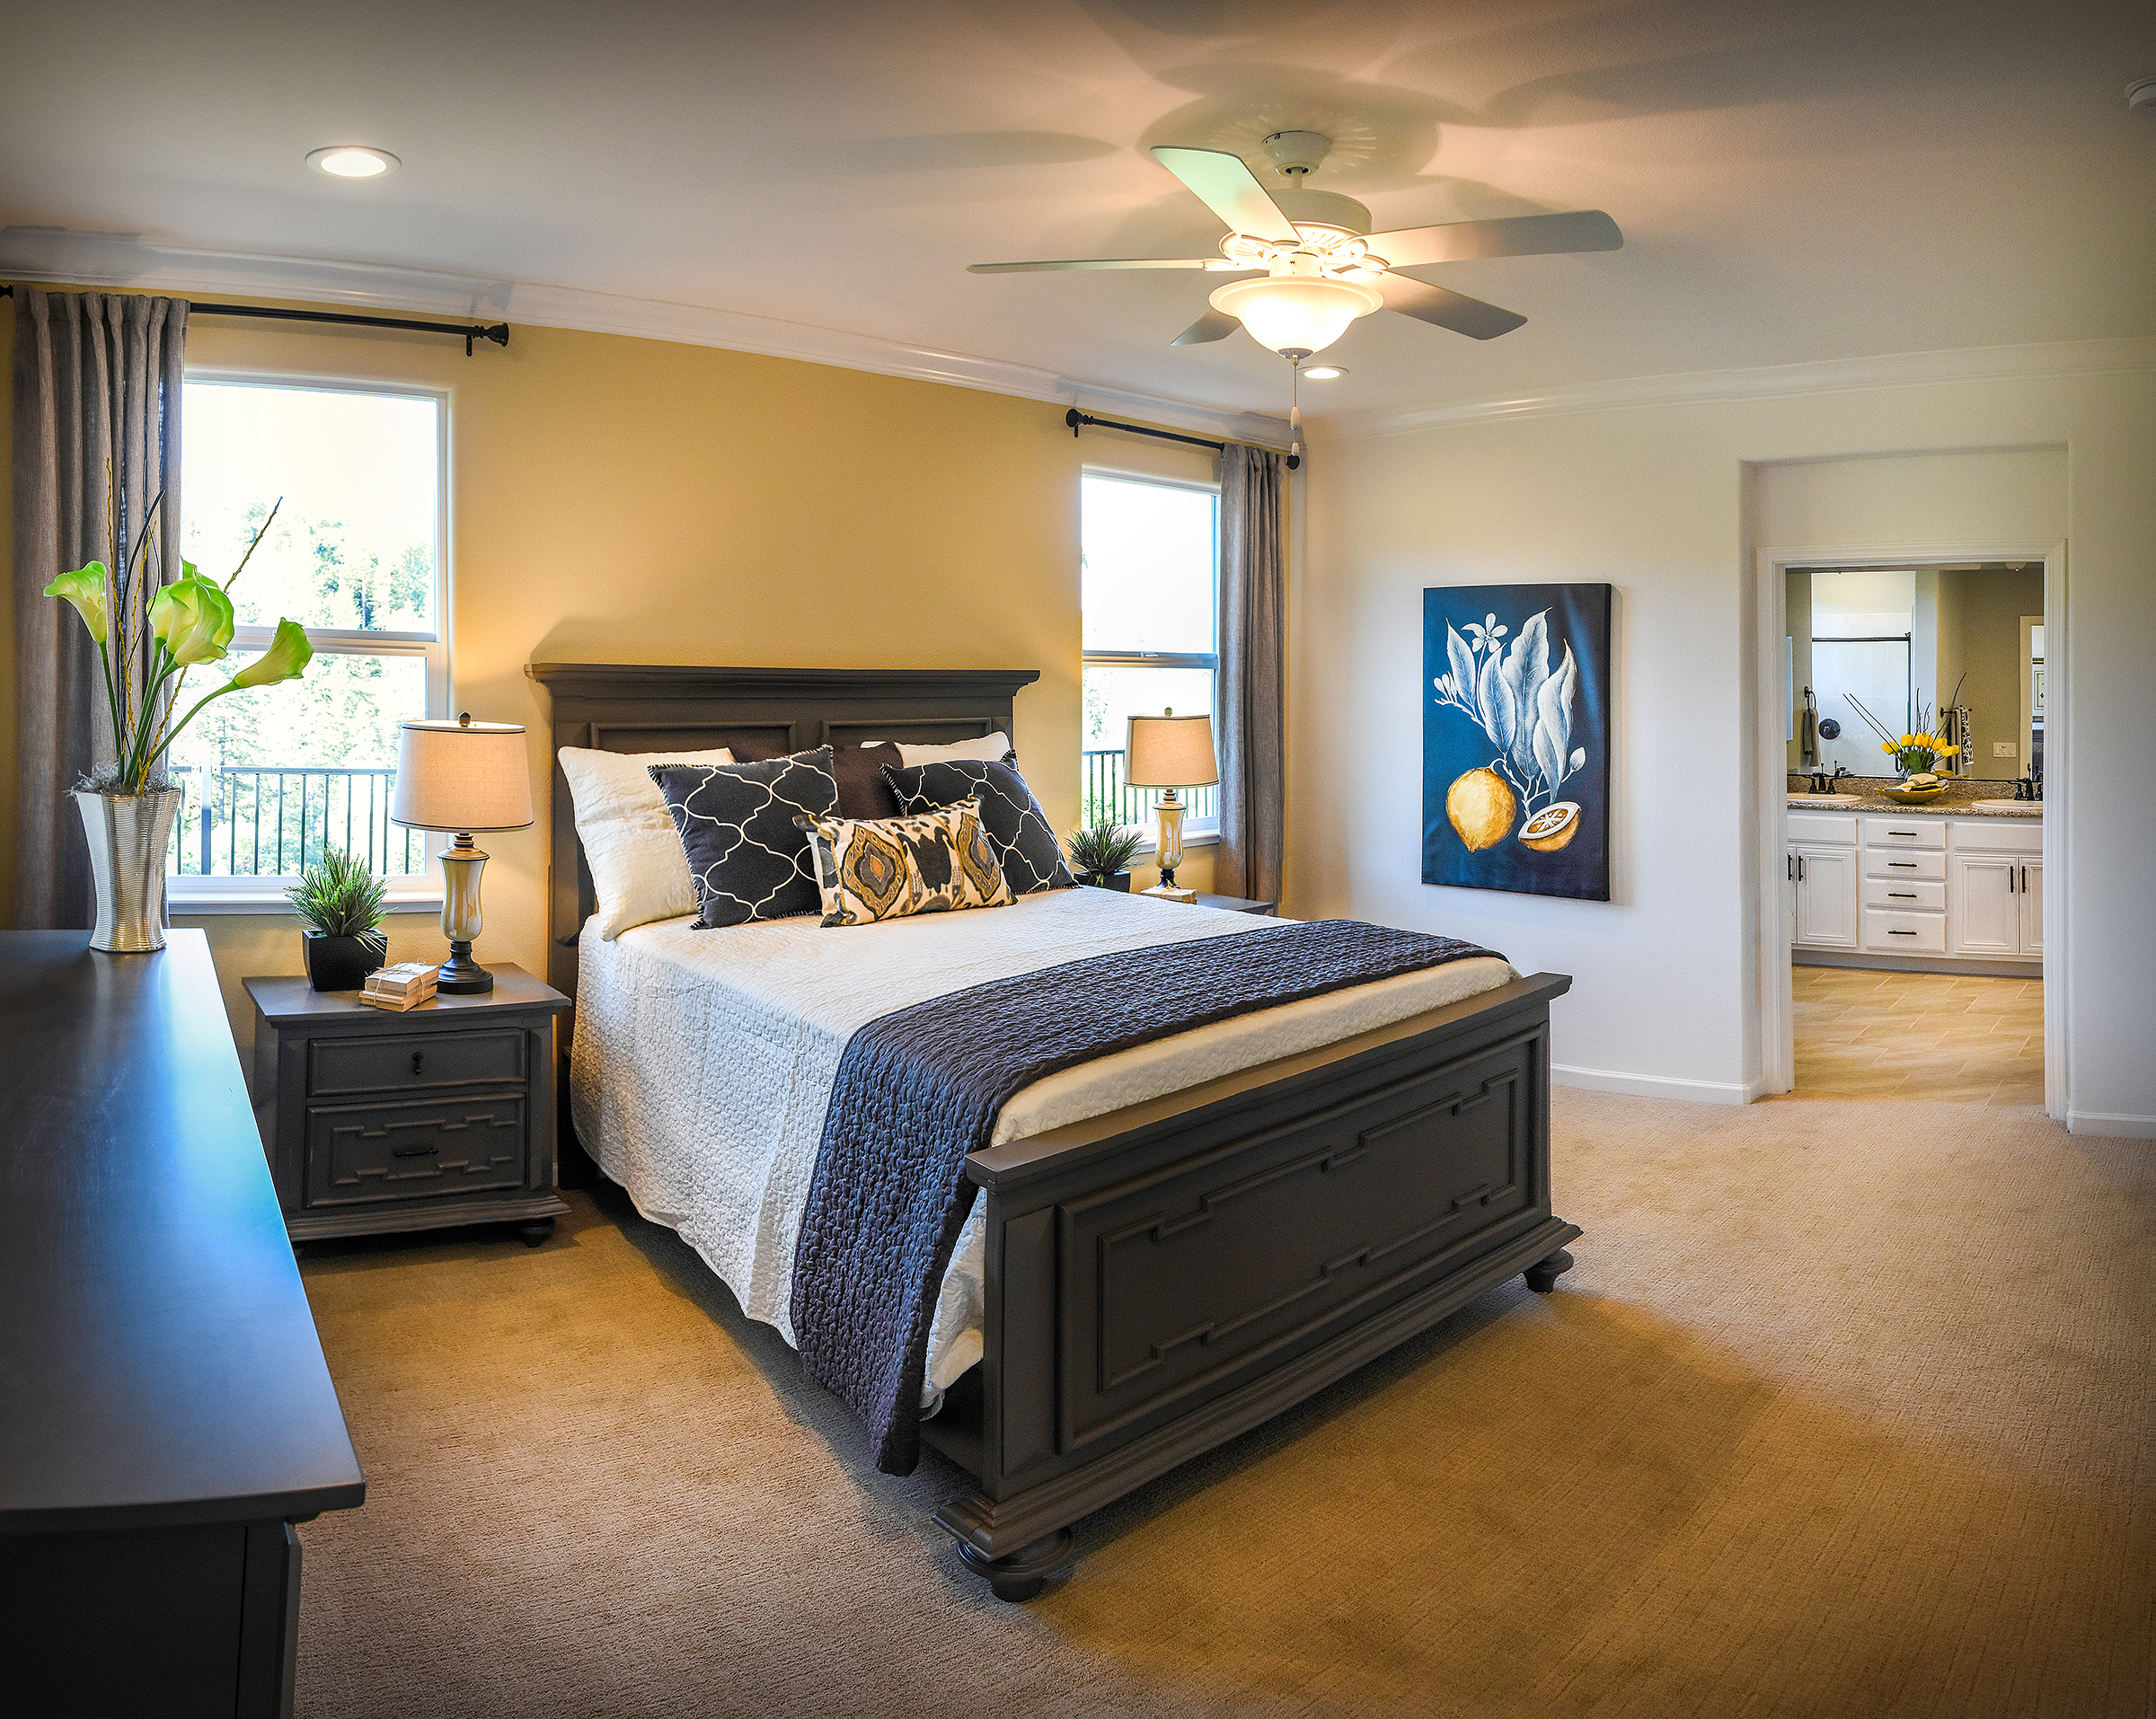 New Year, New Home for Seniors at Silverado Village in Placerville